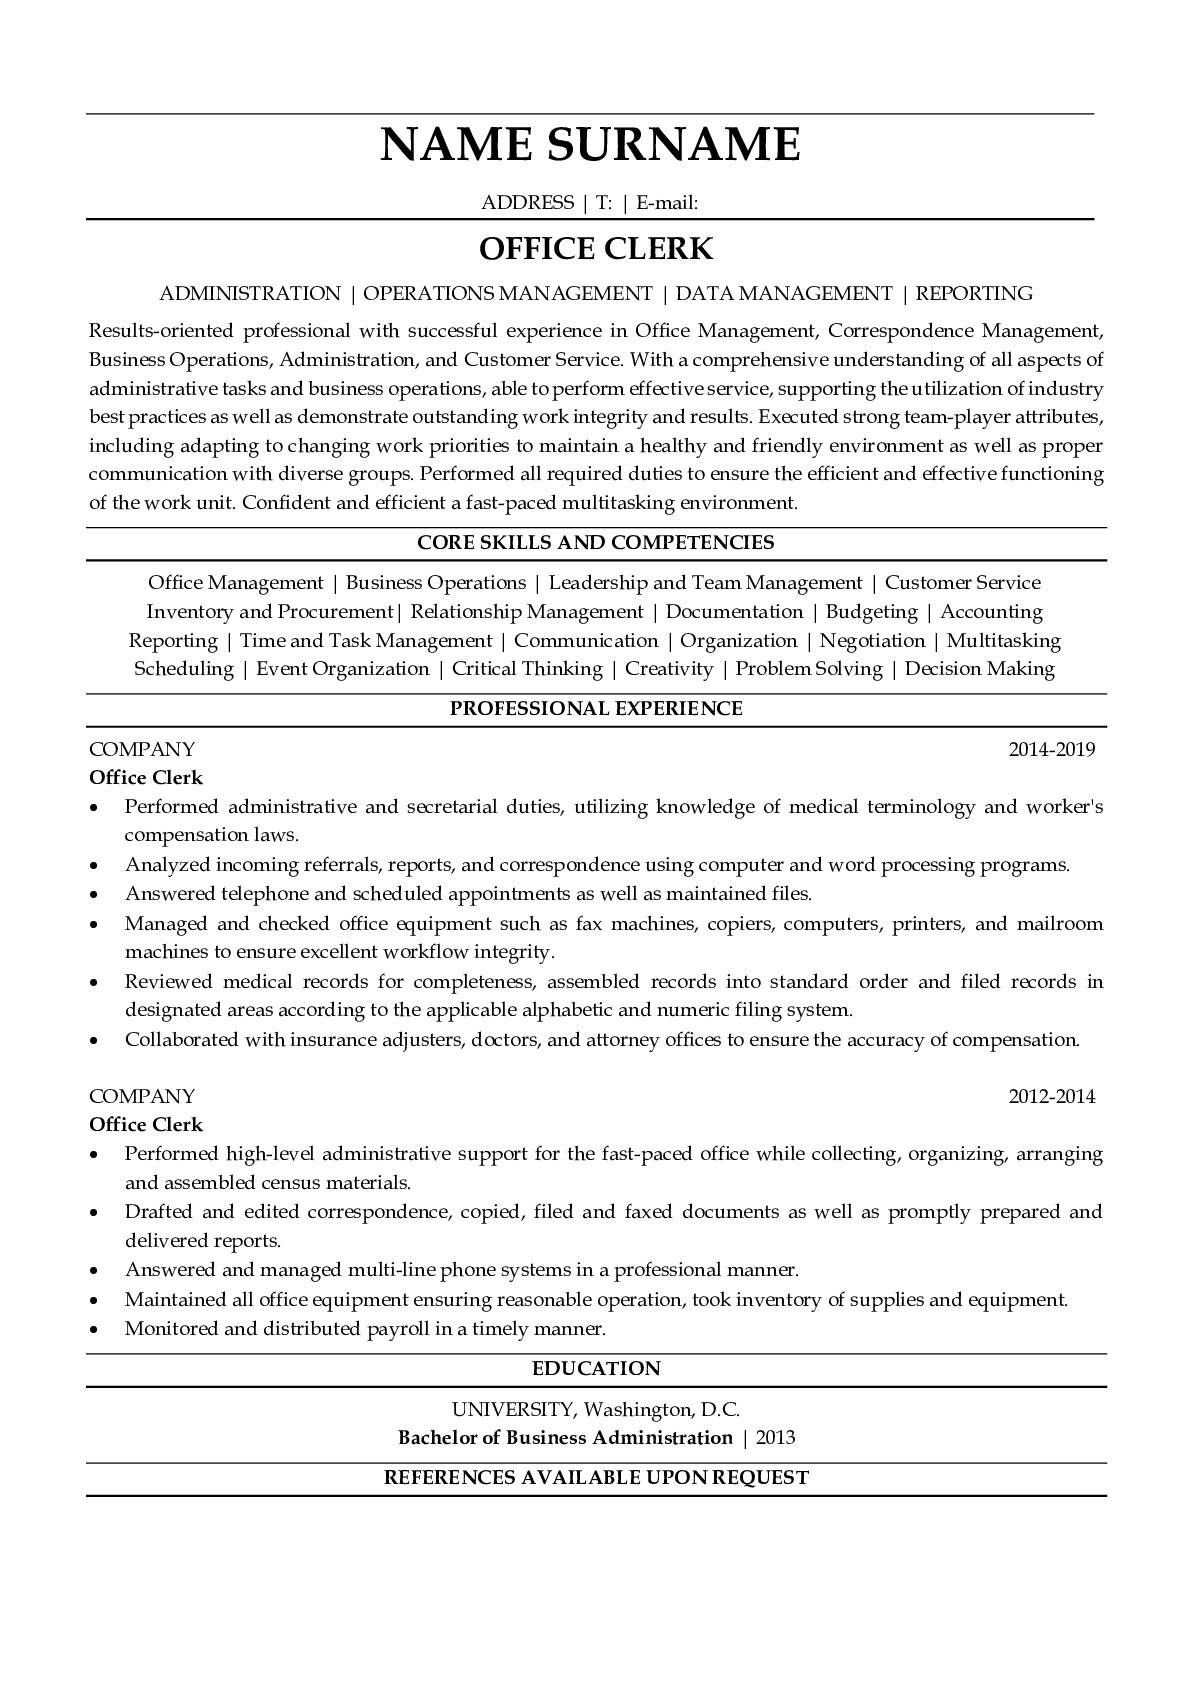 Resume for Office Clerk